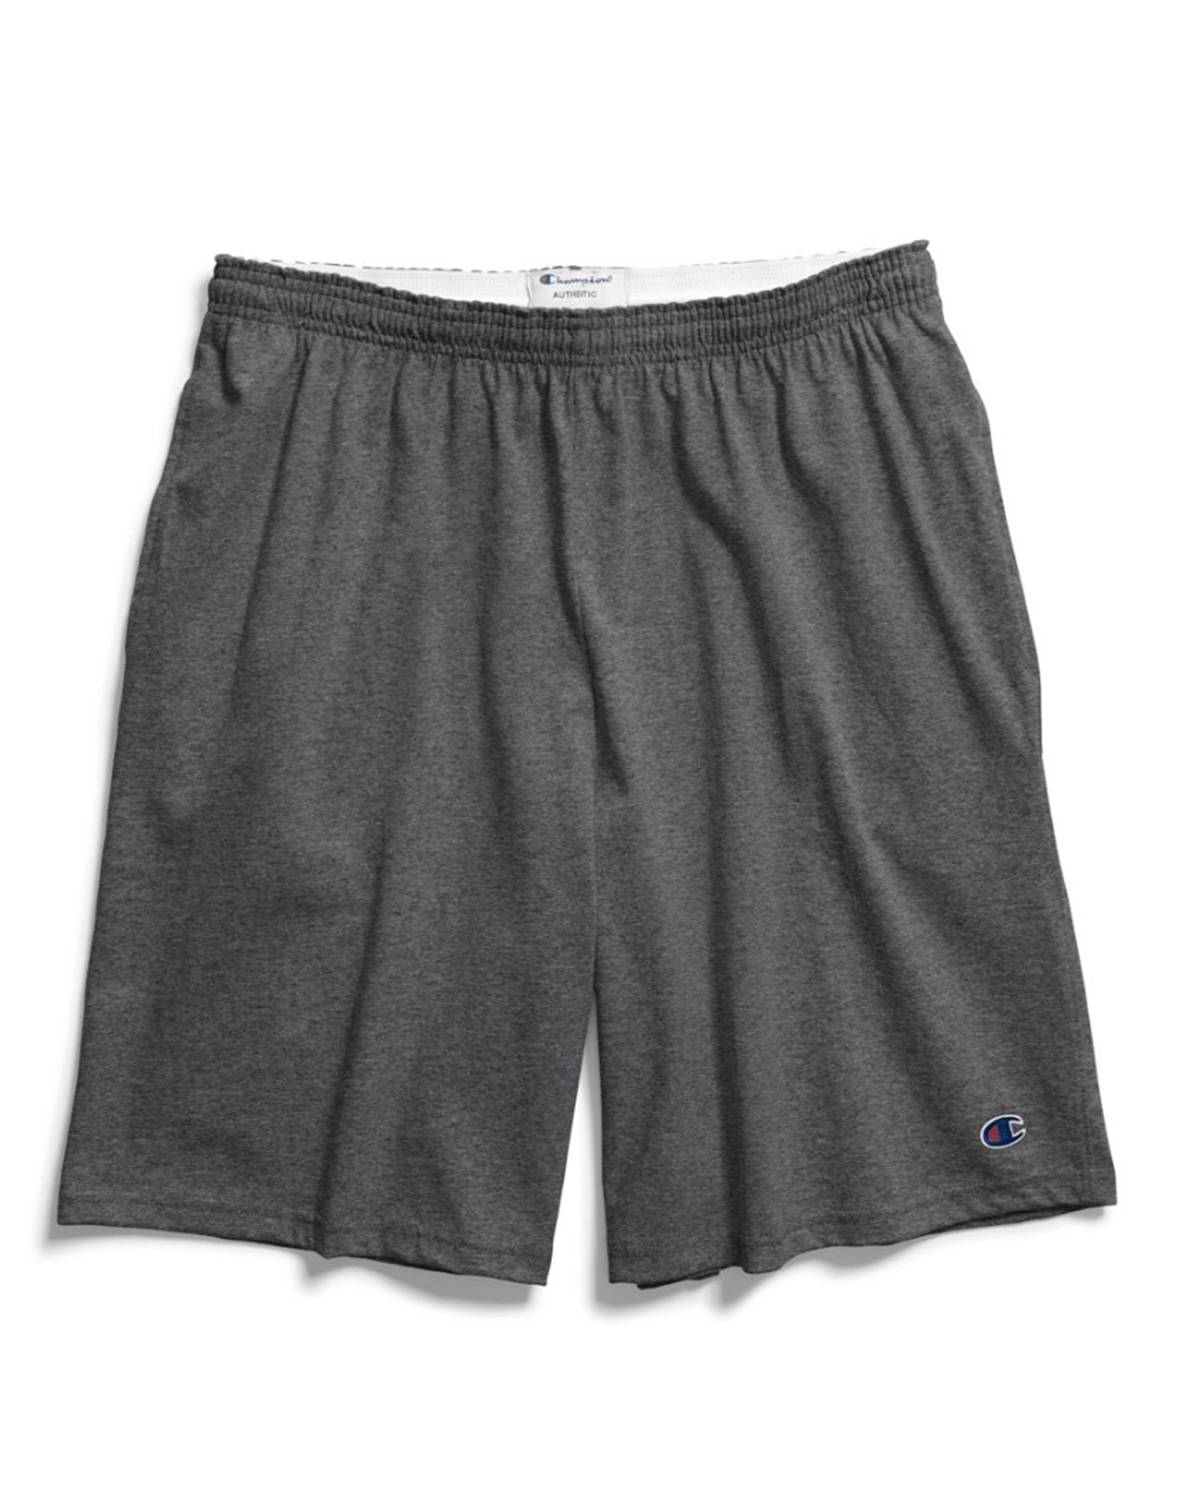 Champion 85653 Authentic Mens Shorts with Pockets - Granite Heather - M 85653